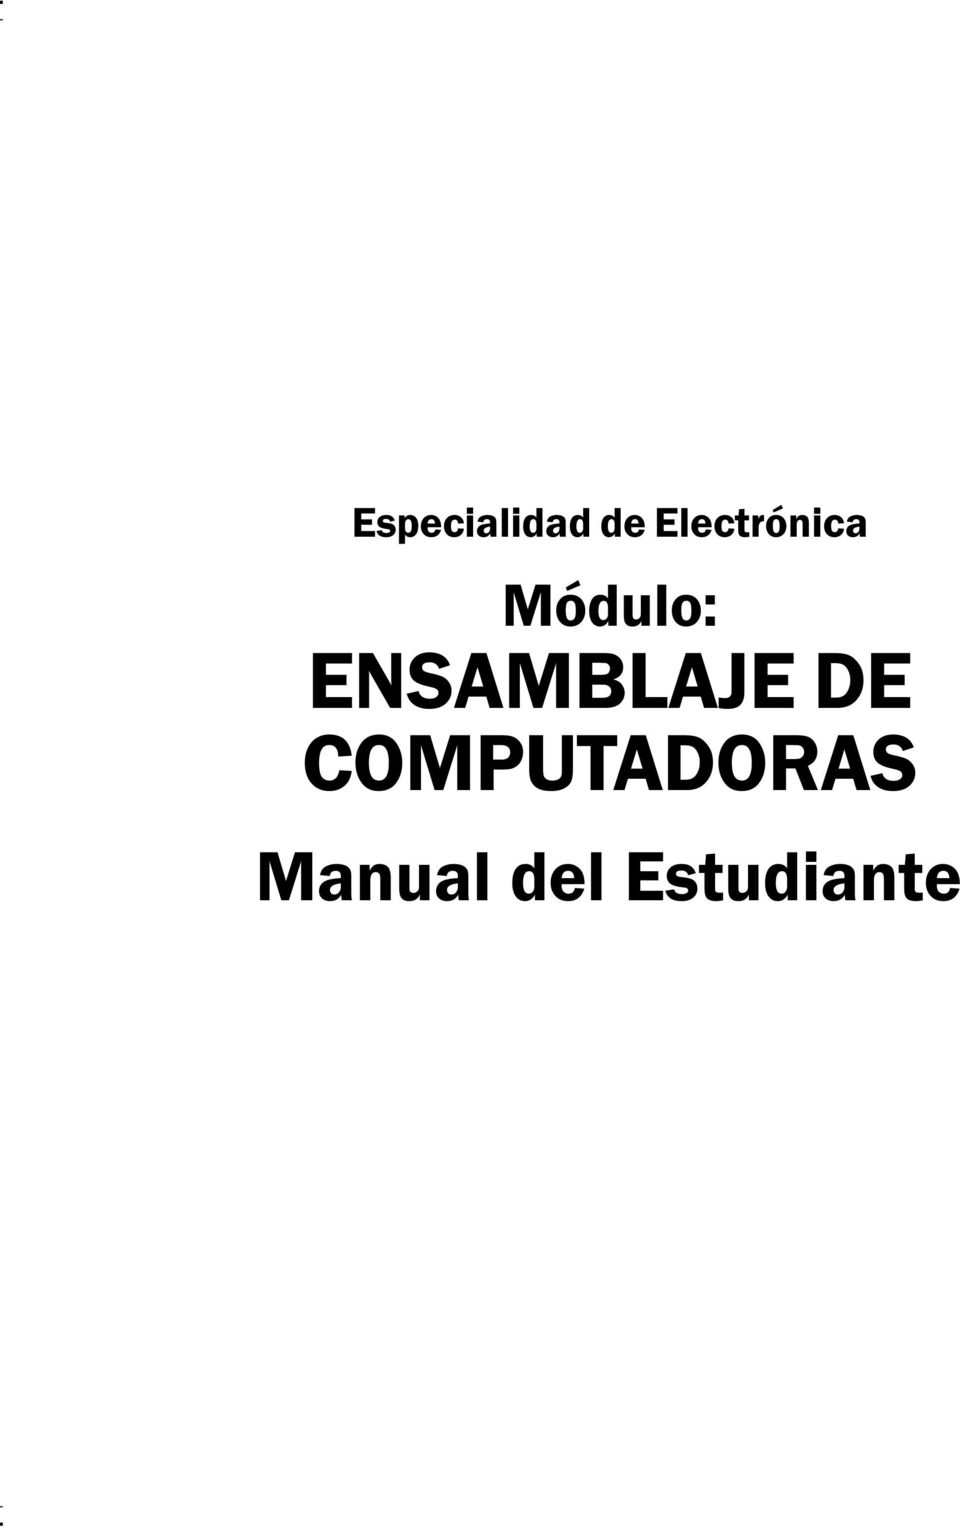 Manual del Estudiante Especialidad de